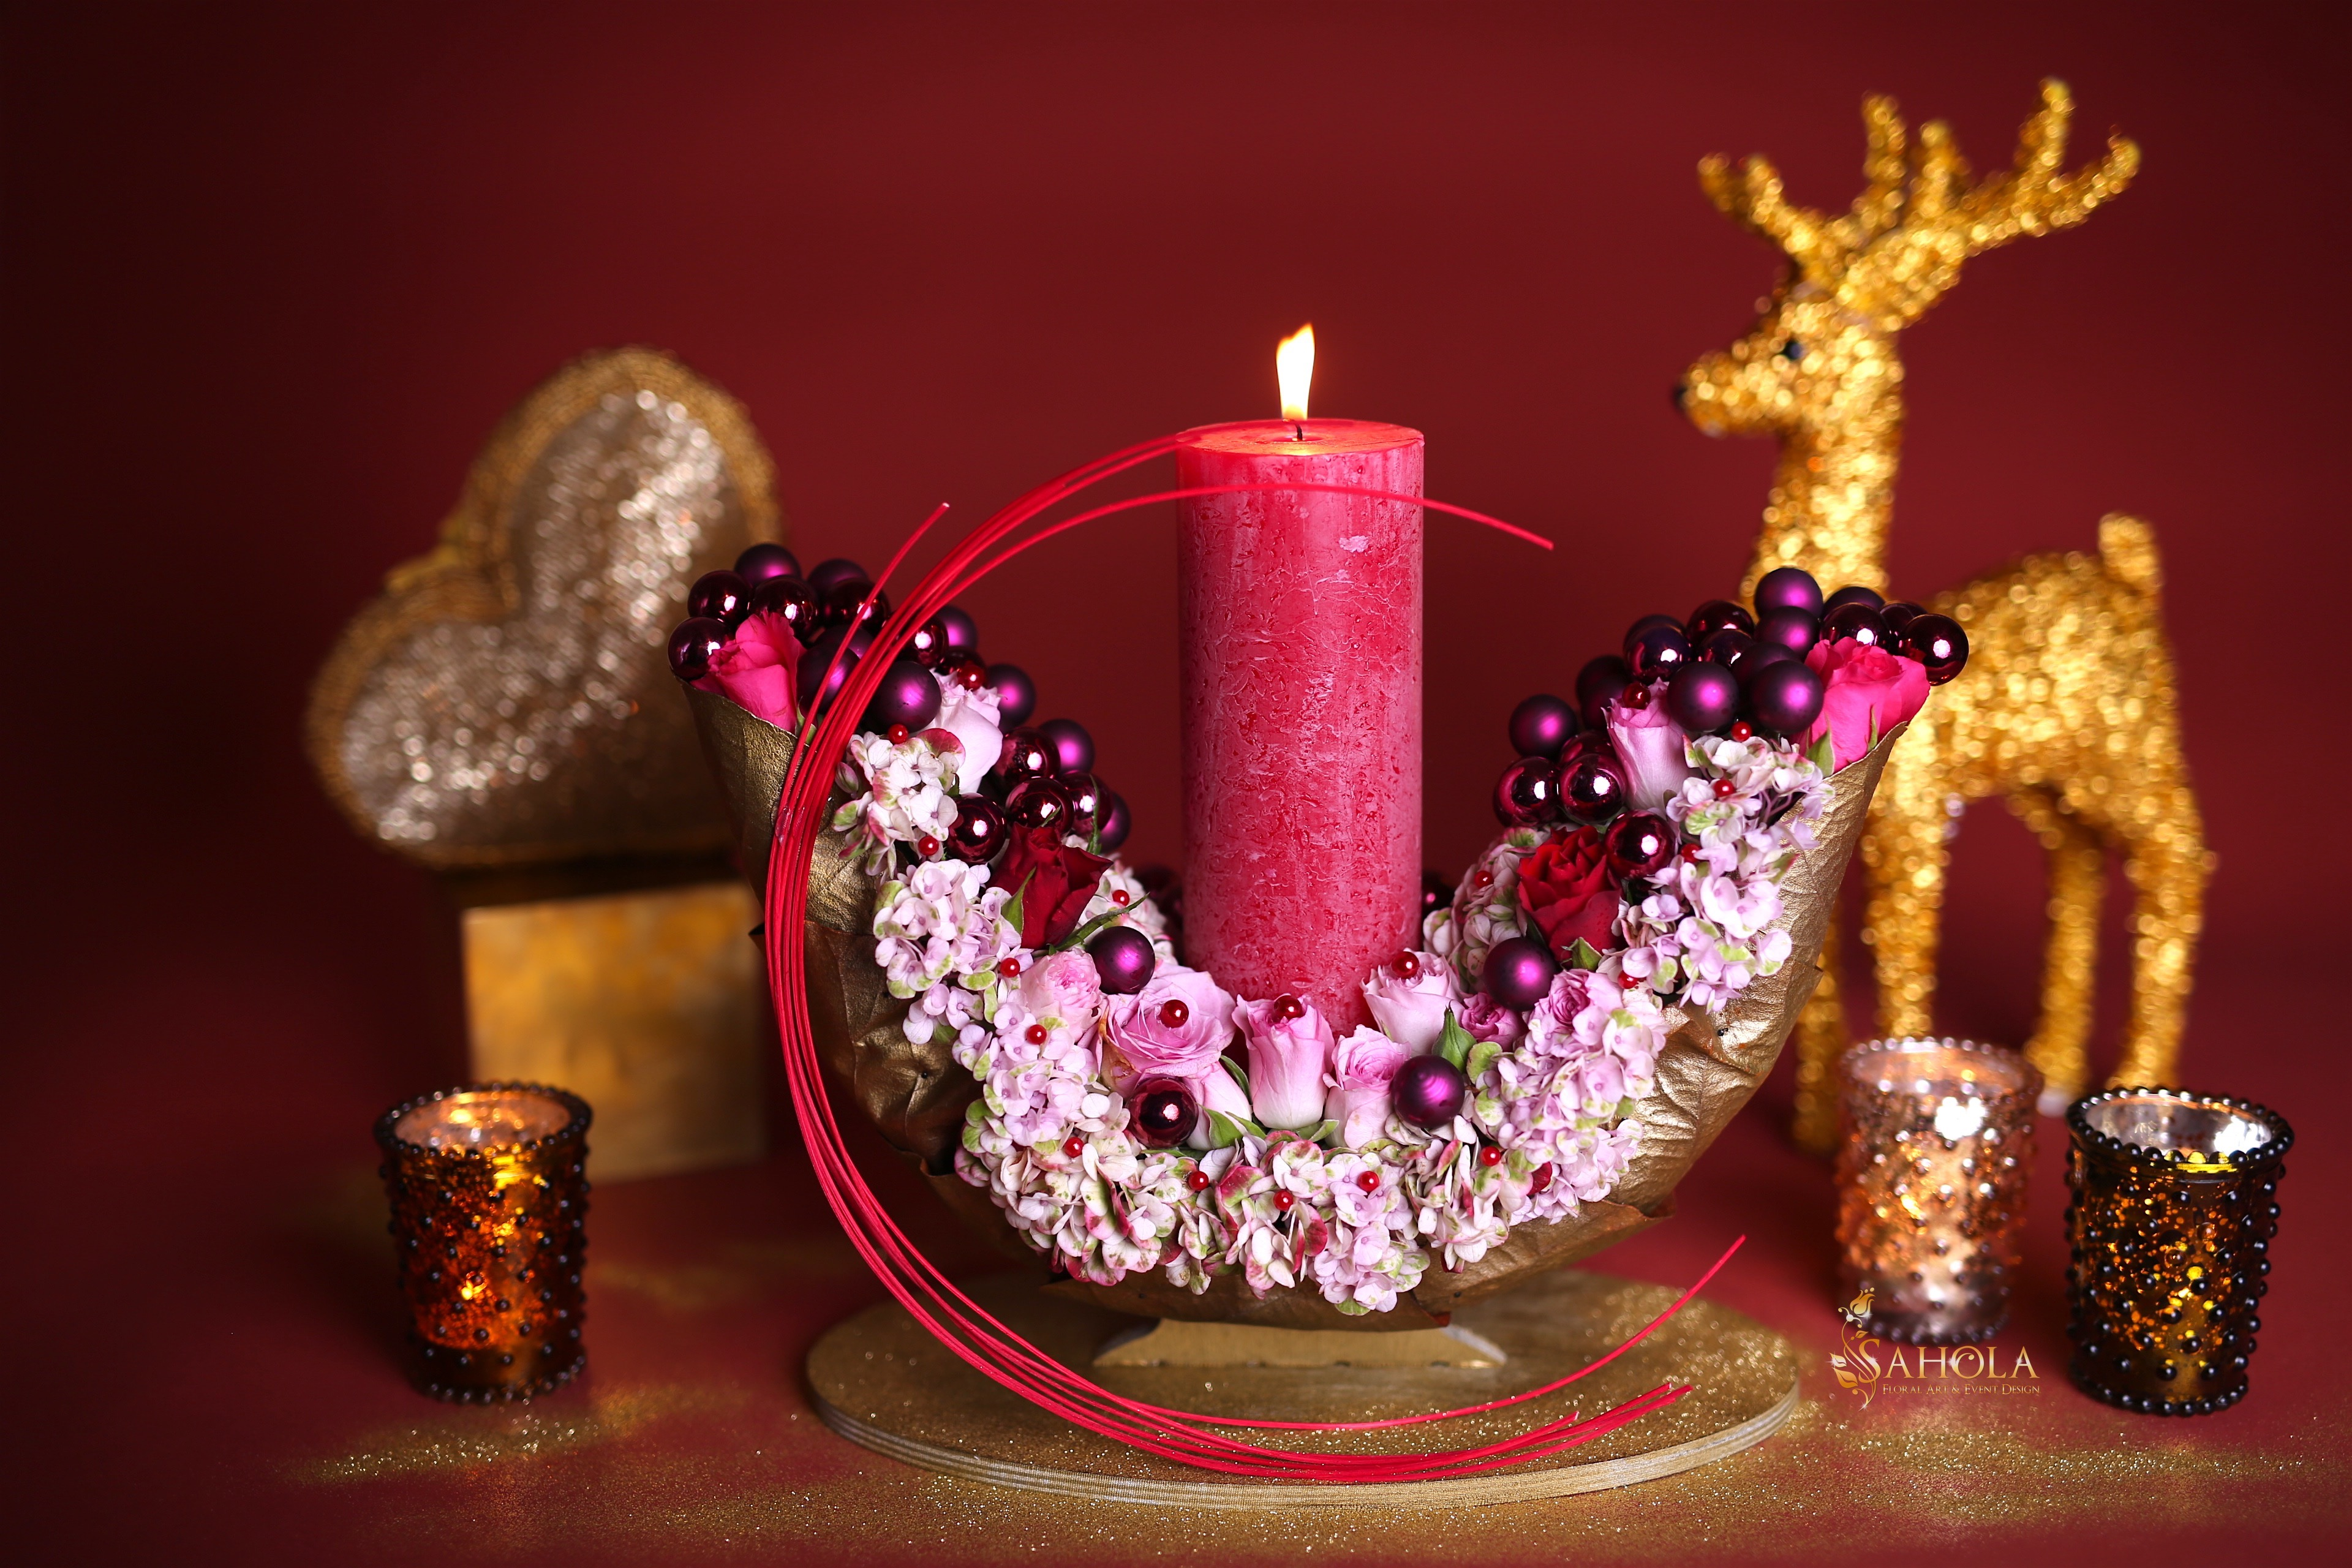 sahola-nyc-florist-holiday-decor